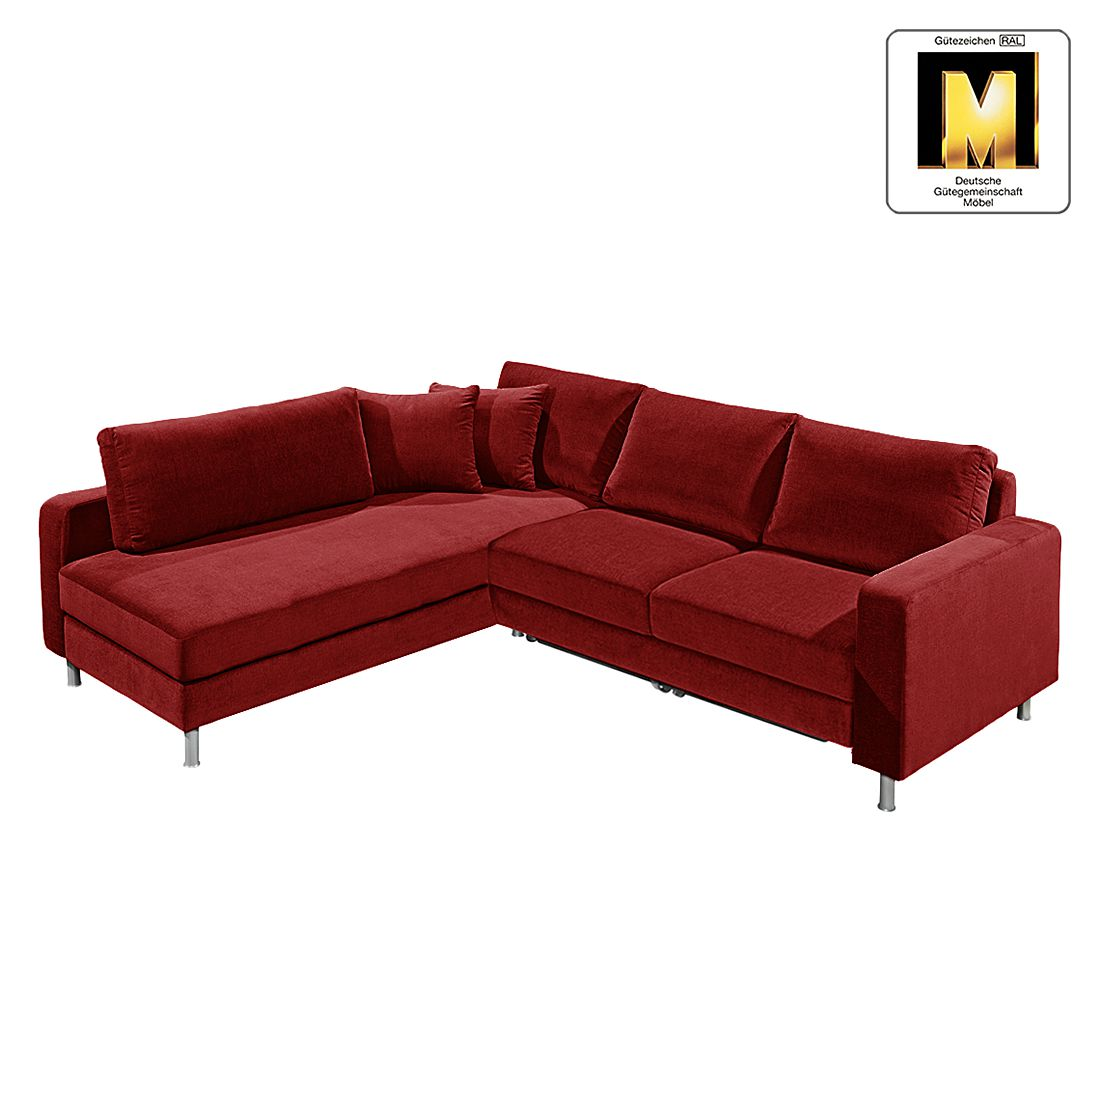 ecksofa casual line vi mit schlaffunktion velours dunkelrot ottomane davorstehend links. Black Bedroom Furniture Sets. Home Design Ideas